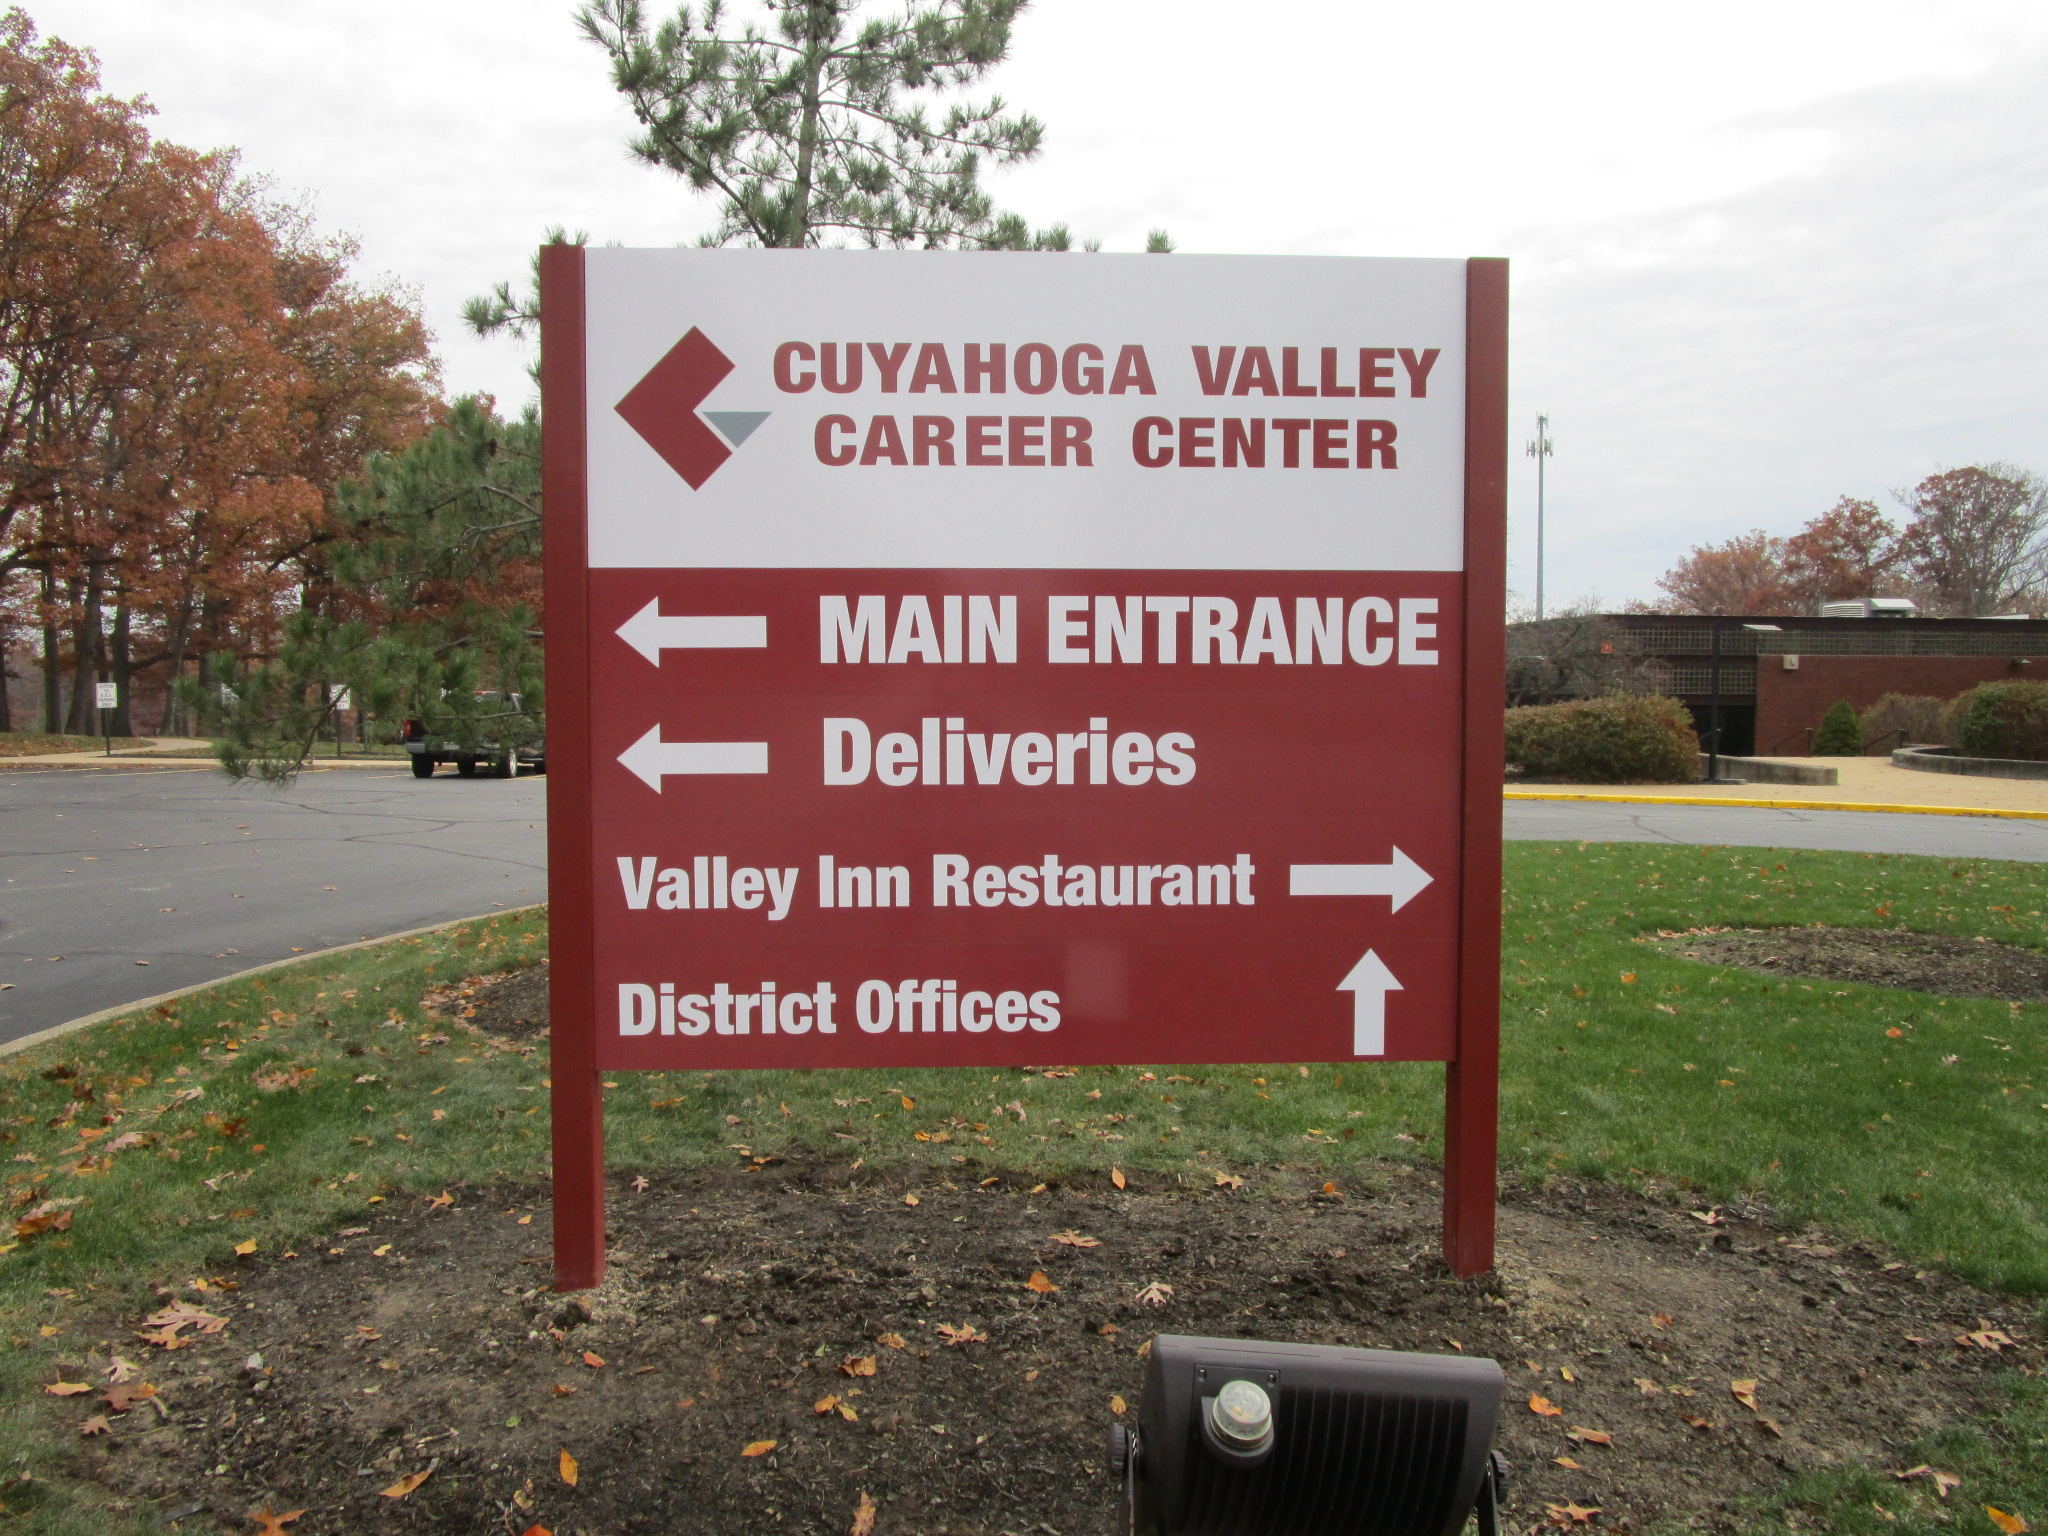 cuyahoga valley career center directional sign